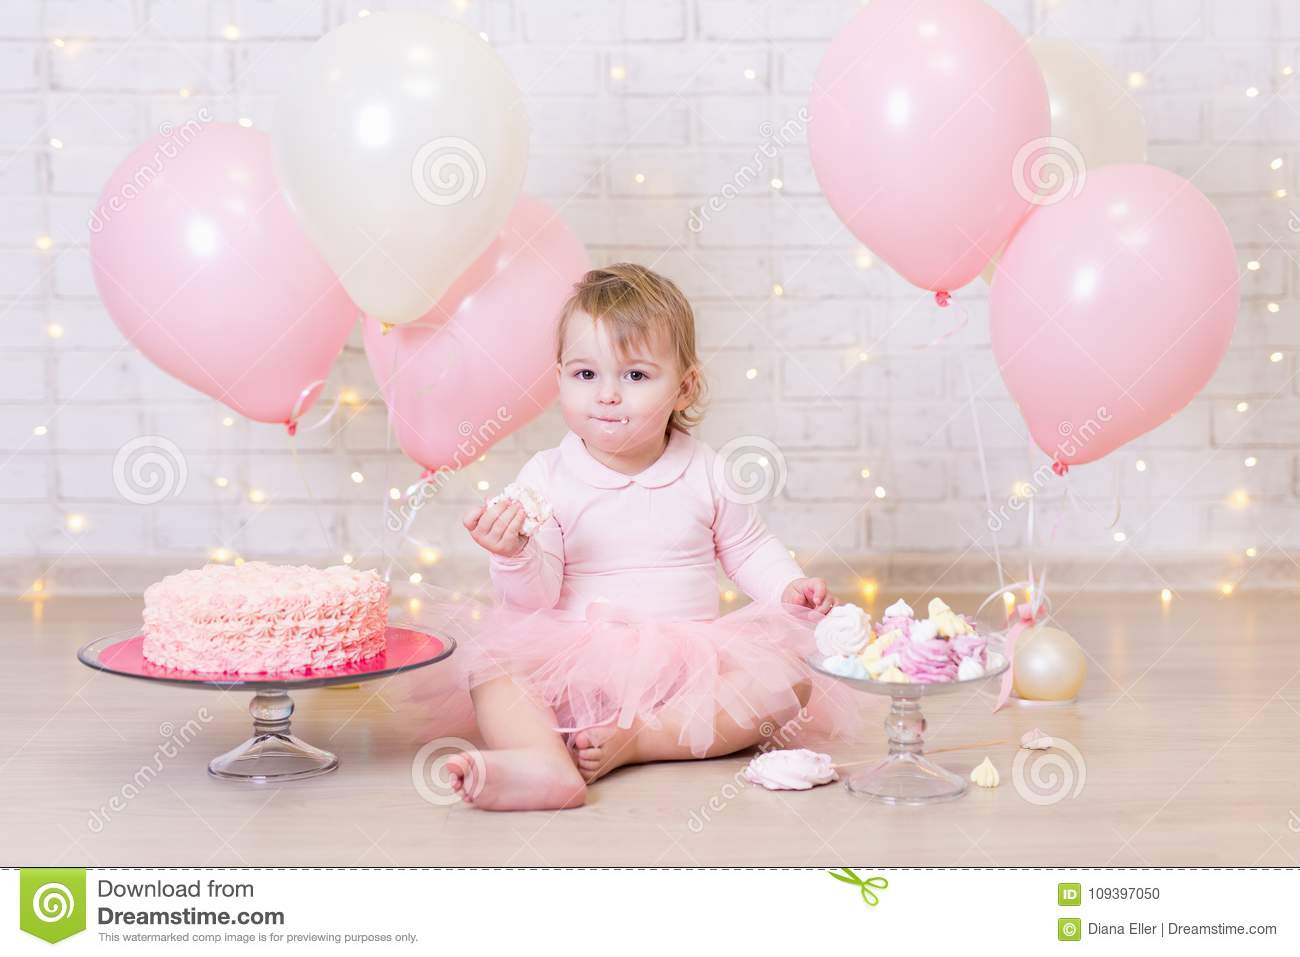 First birthday party concept - cute little girl eating cake over